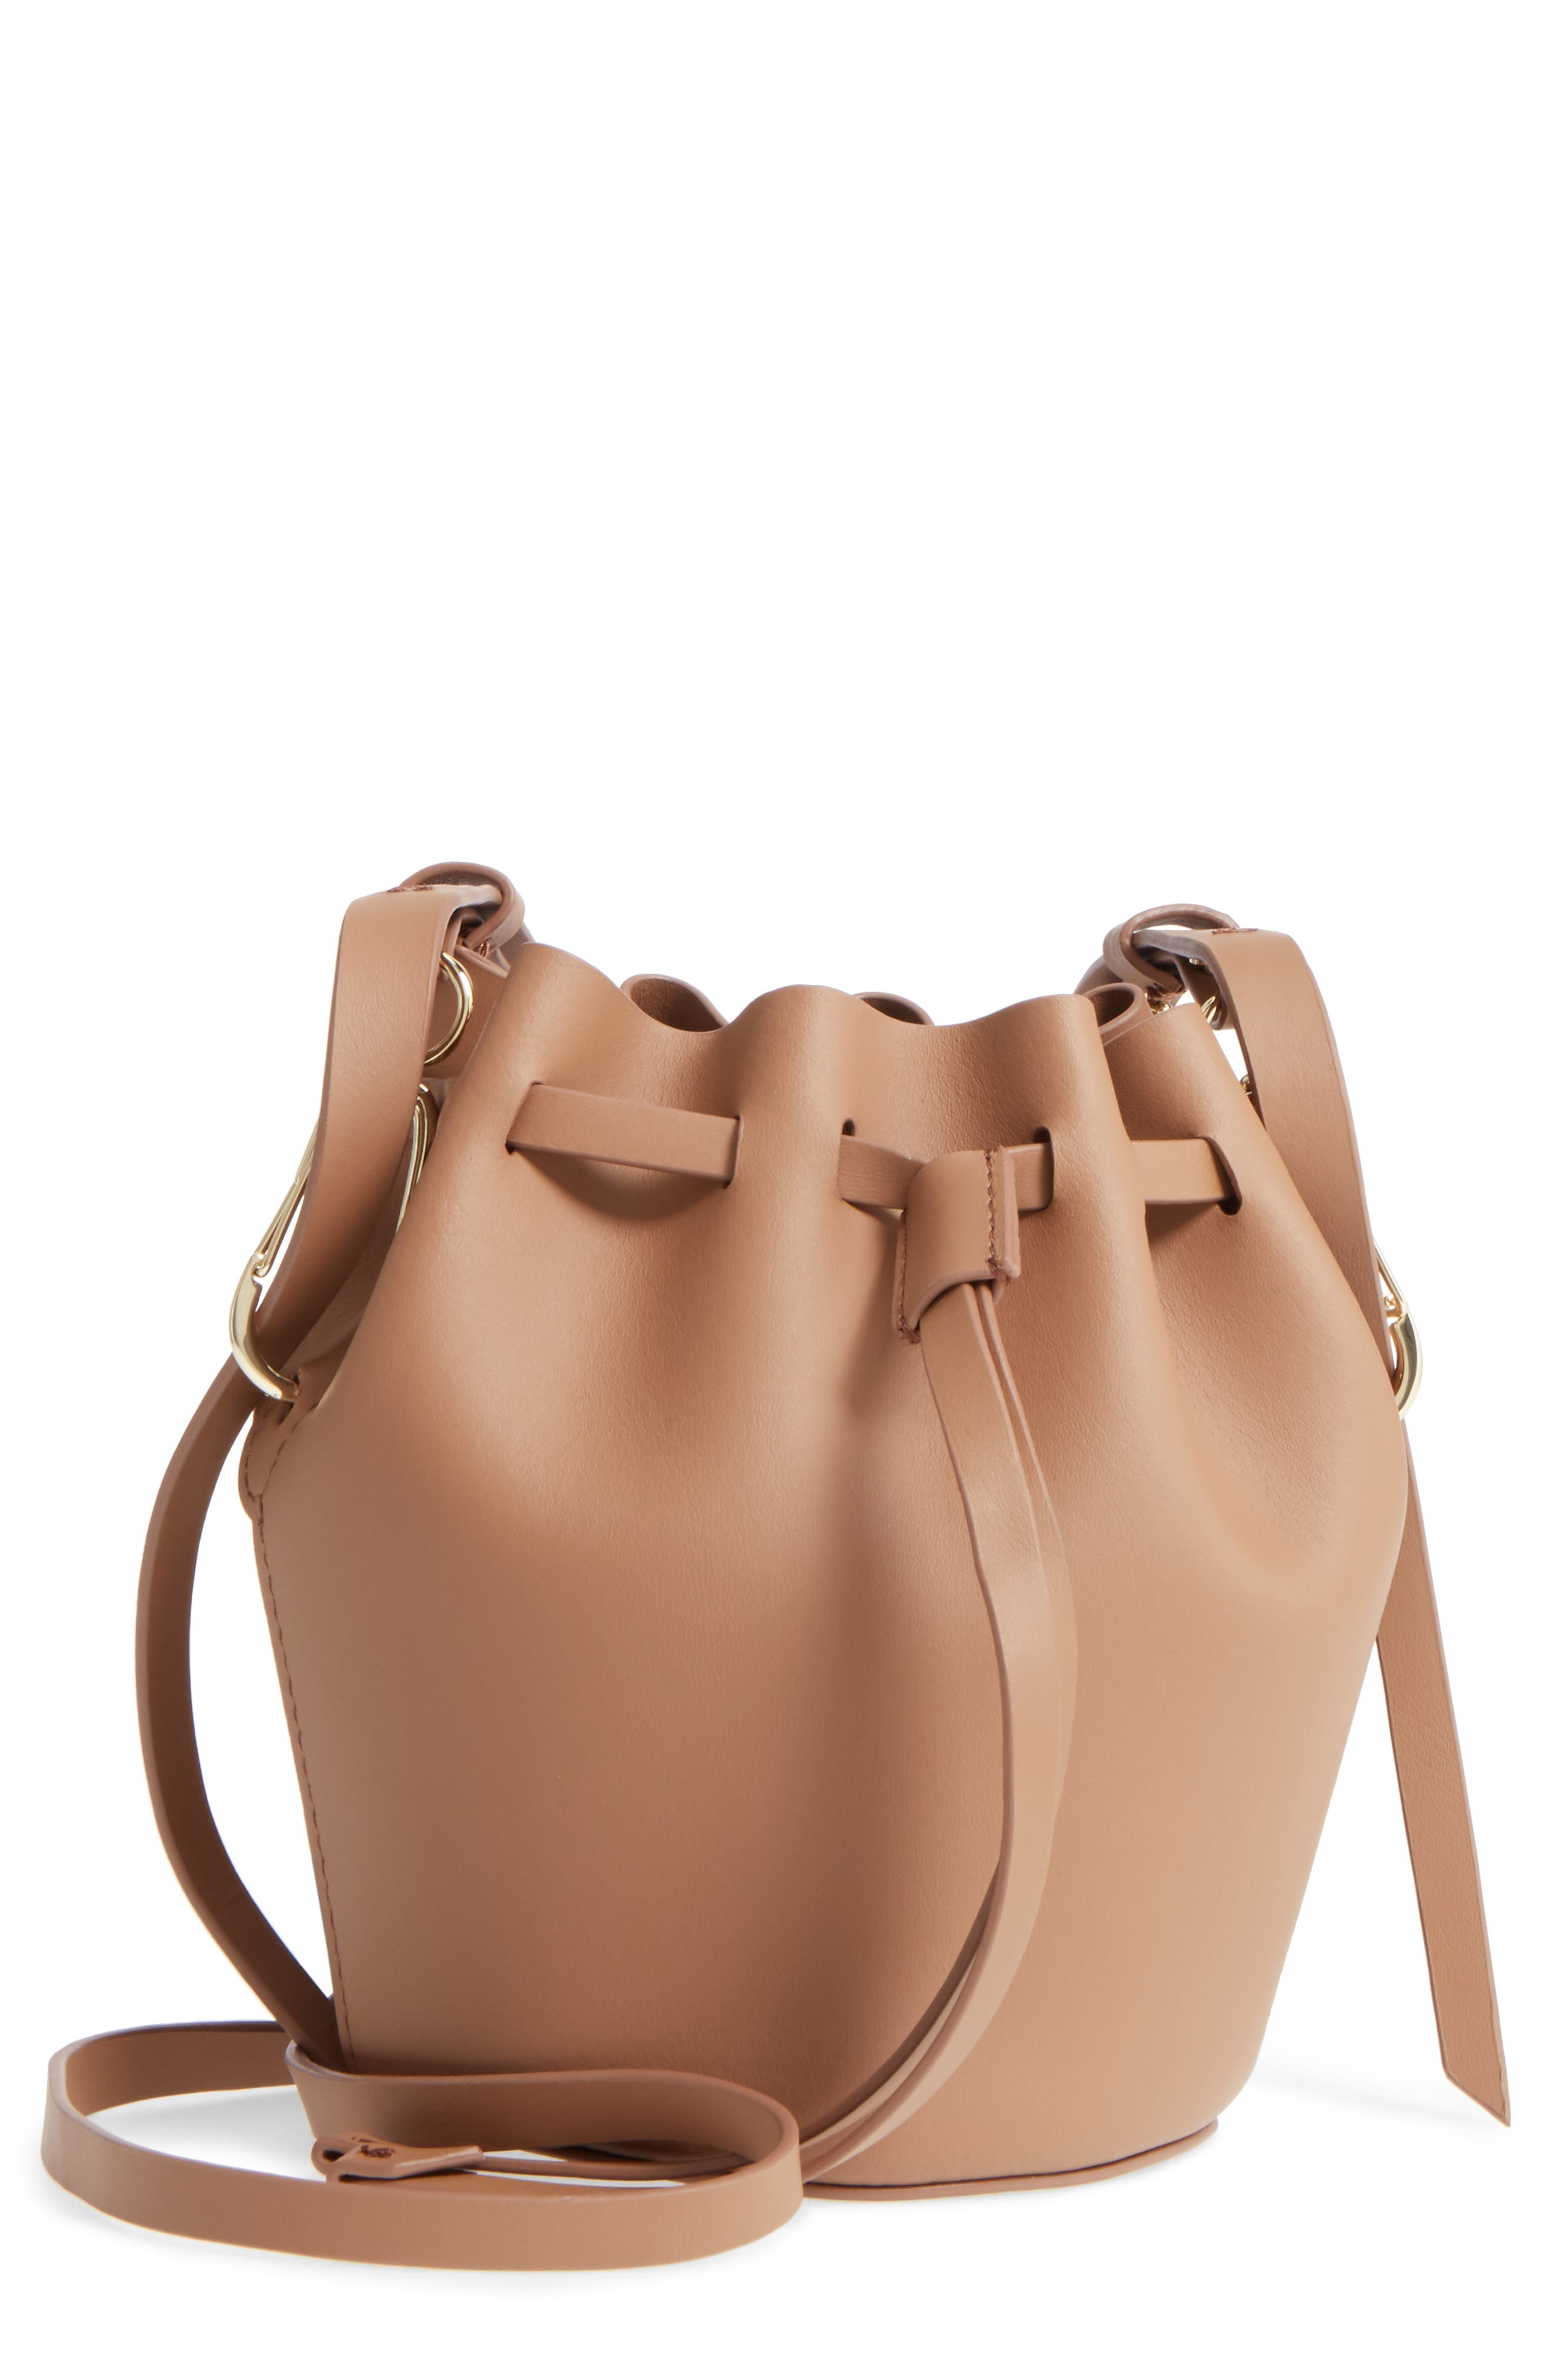 ZAC Zac Posen Mini Belay Calfskin Leather Drawstring Bag